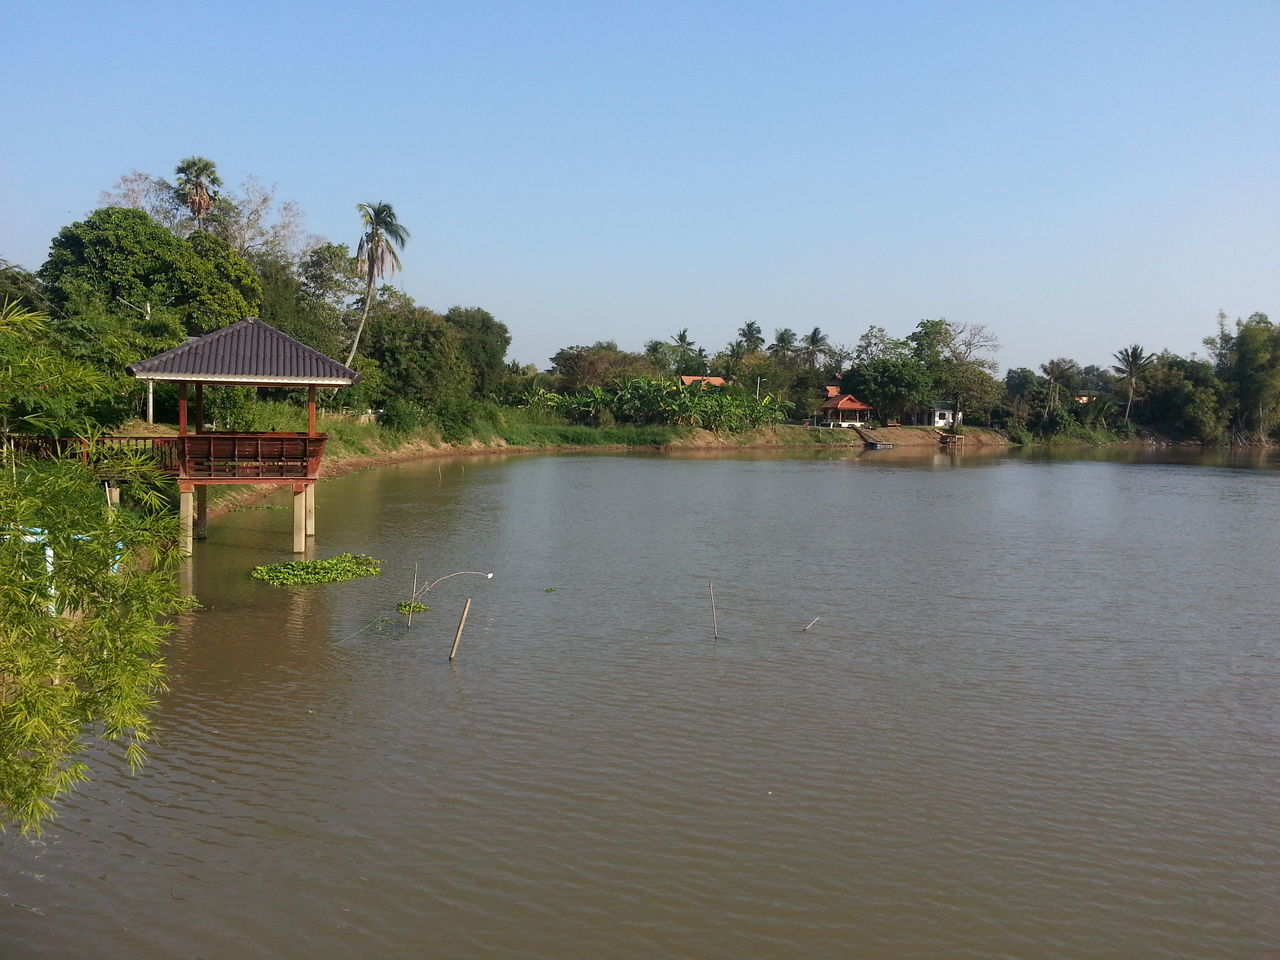 water, tree, built structure, lake, clear sky, architecture, outdoors, tranquility, day, stilt house, nature, no people, palm tree, scenics, beauty in nature, sky